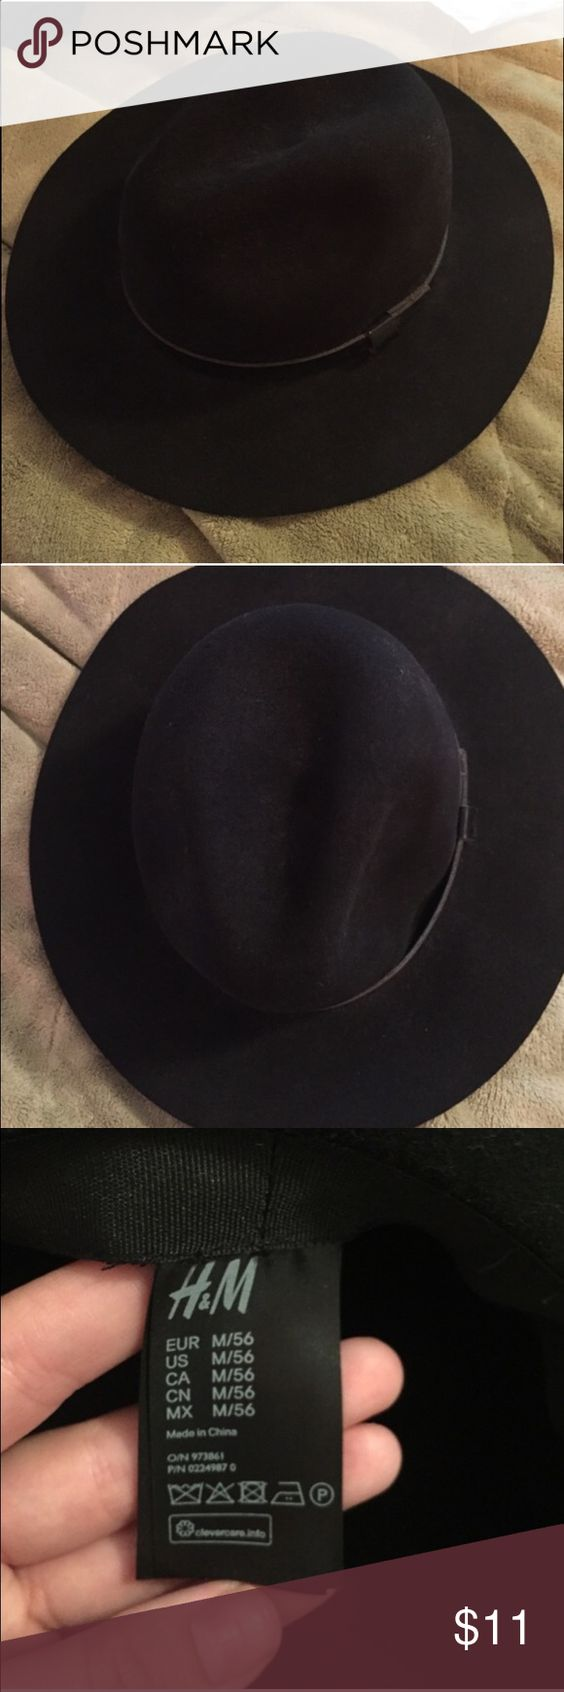 H&M Wide brimmed felt hat Size listed in photos, has pleather belt around hat H&M Accessories Hats